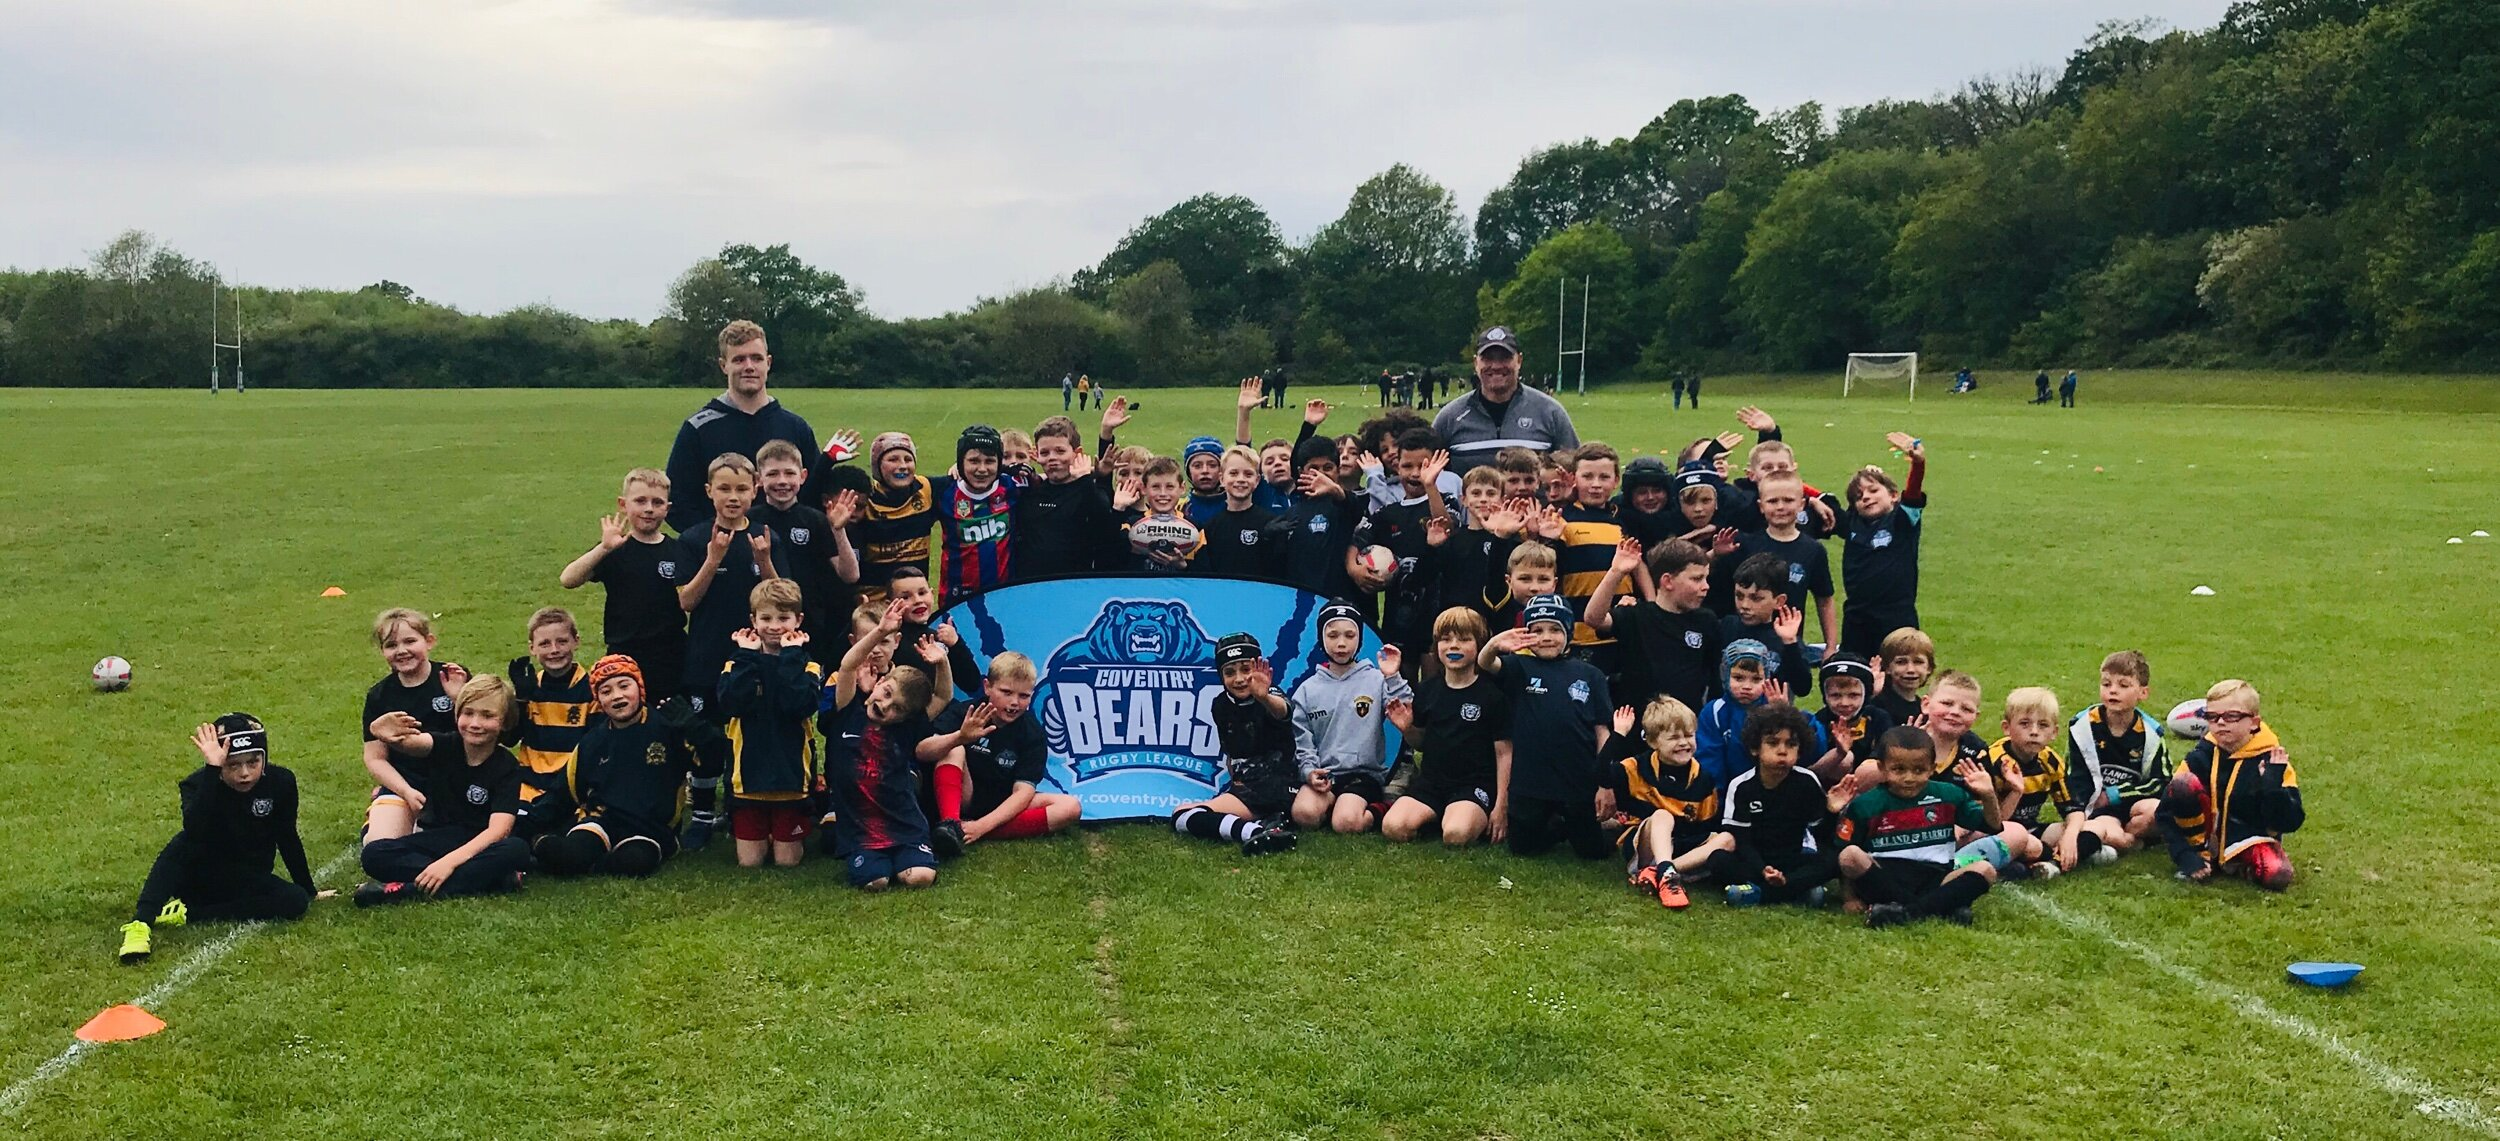 Coventry Bears Junior Training with coaches Peter Ryan and Troy Perkins